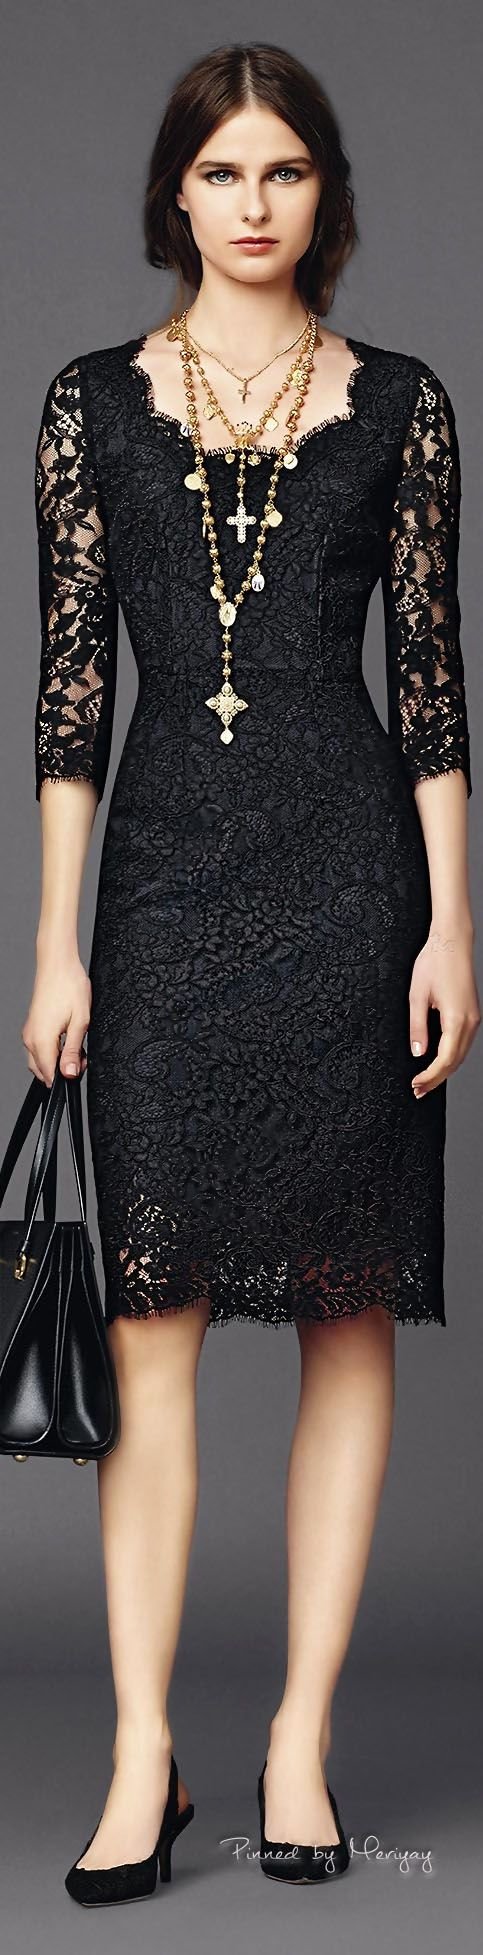 ♔Dolce & Gabbana.2015♔ loving sheer black (and lace always) for evening this spring                                                                                                                                                                                 More